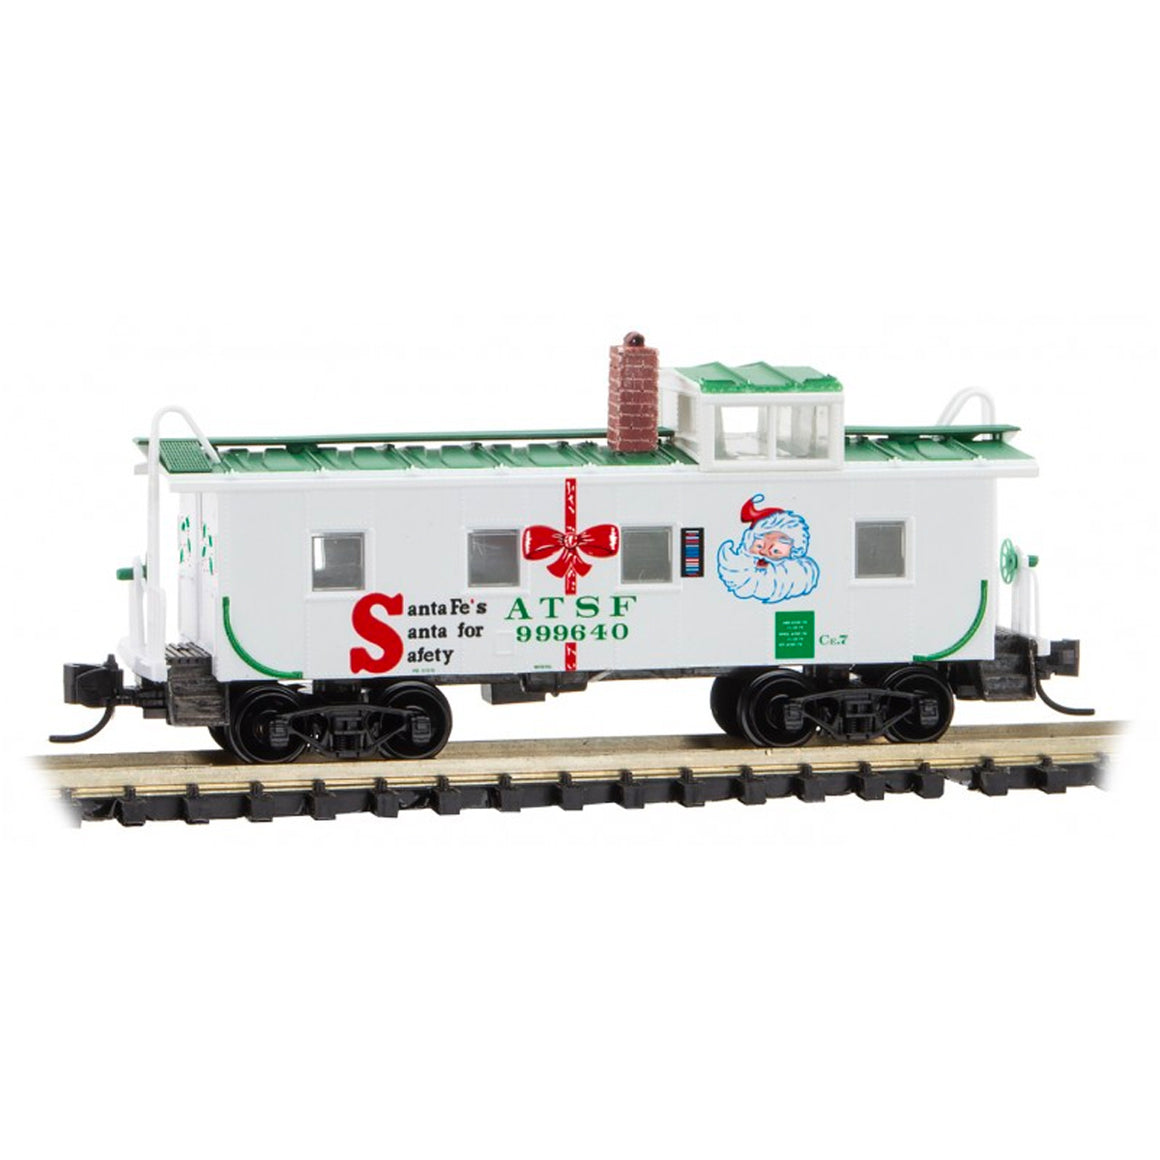 N Scale: 36' Riveted Steel Caboose - ATSF 'Santa for Safety'